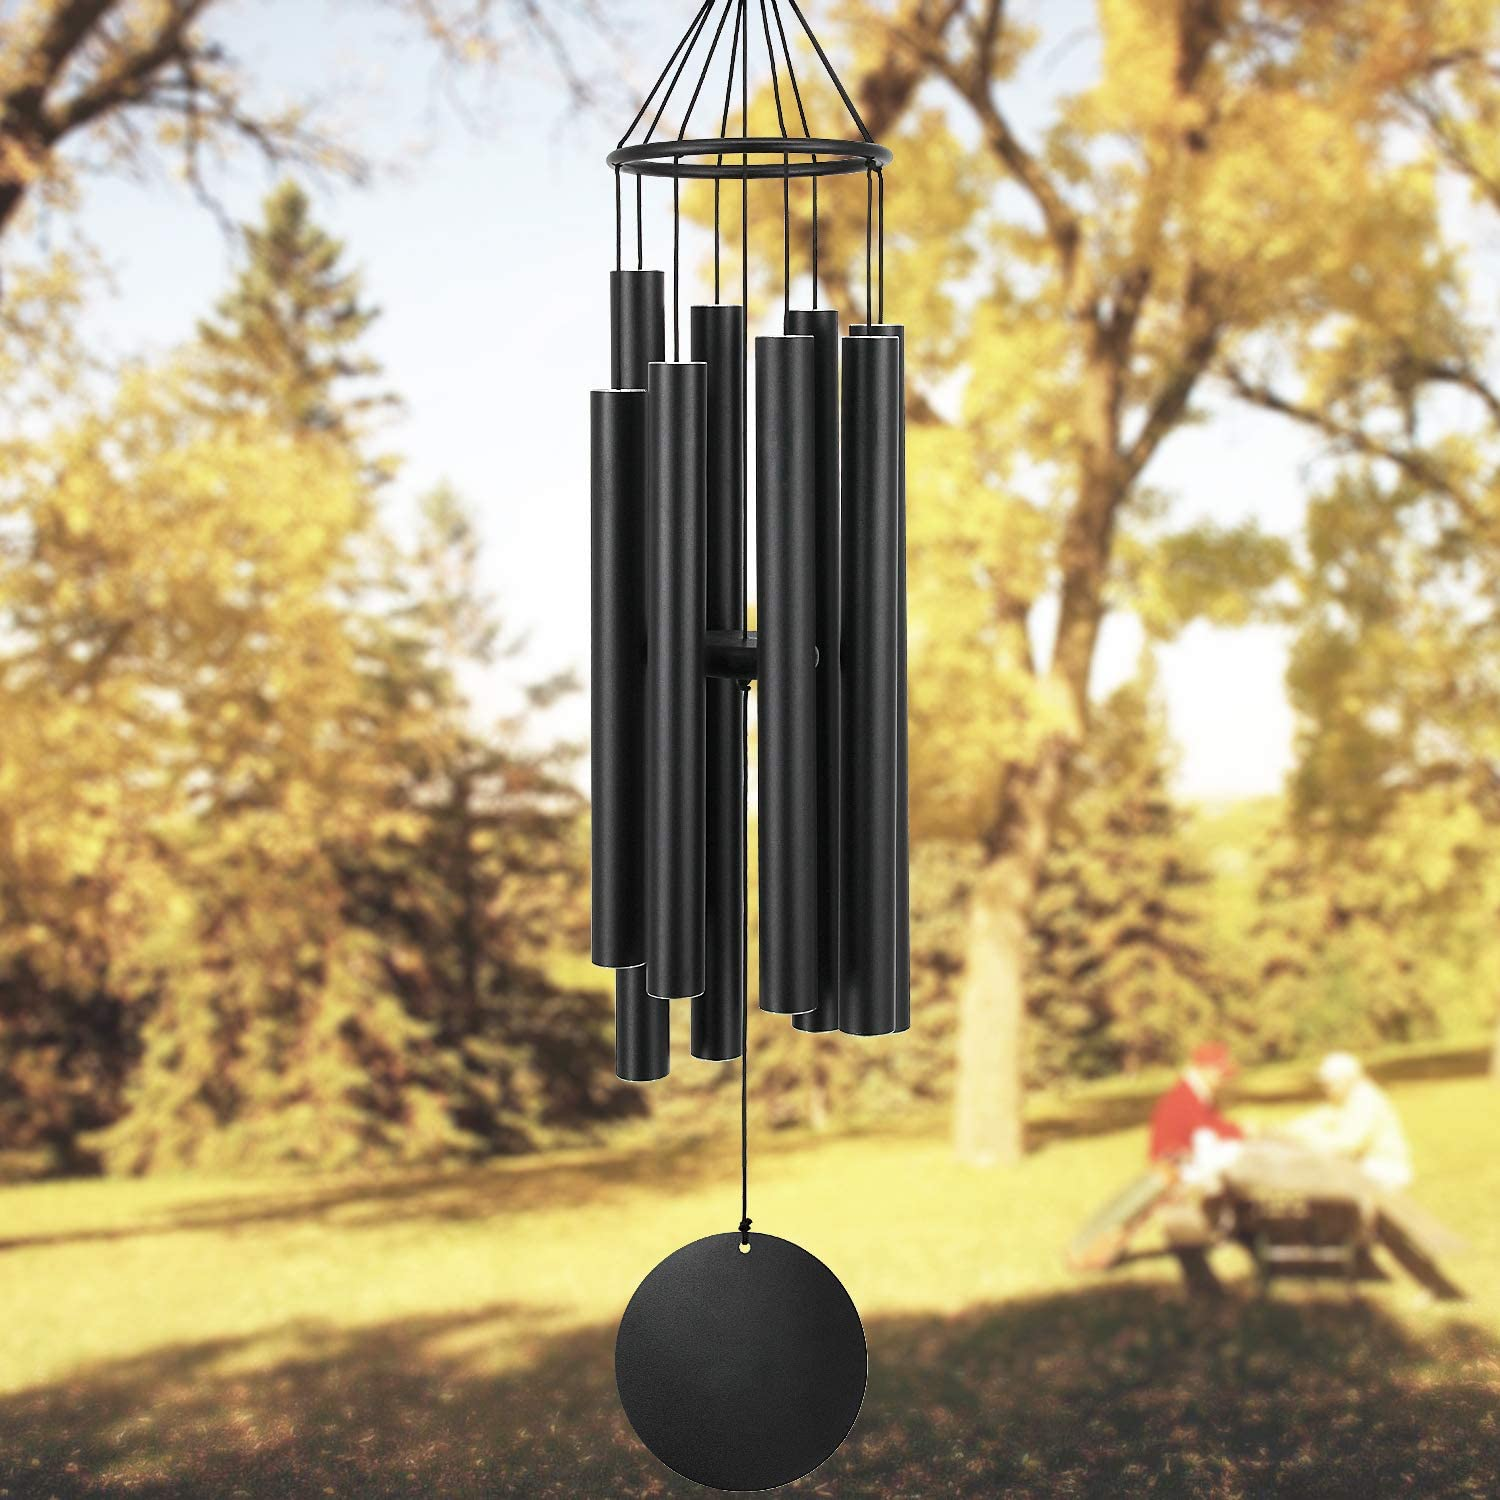 Deluxe ASTARIN Wind Chimes Outdoor Memorial Deep Tone Los Angeles Mall